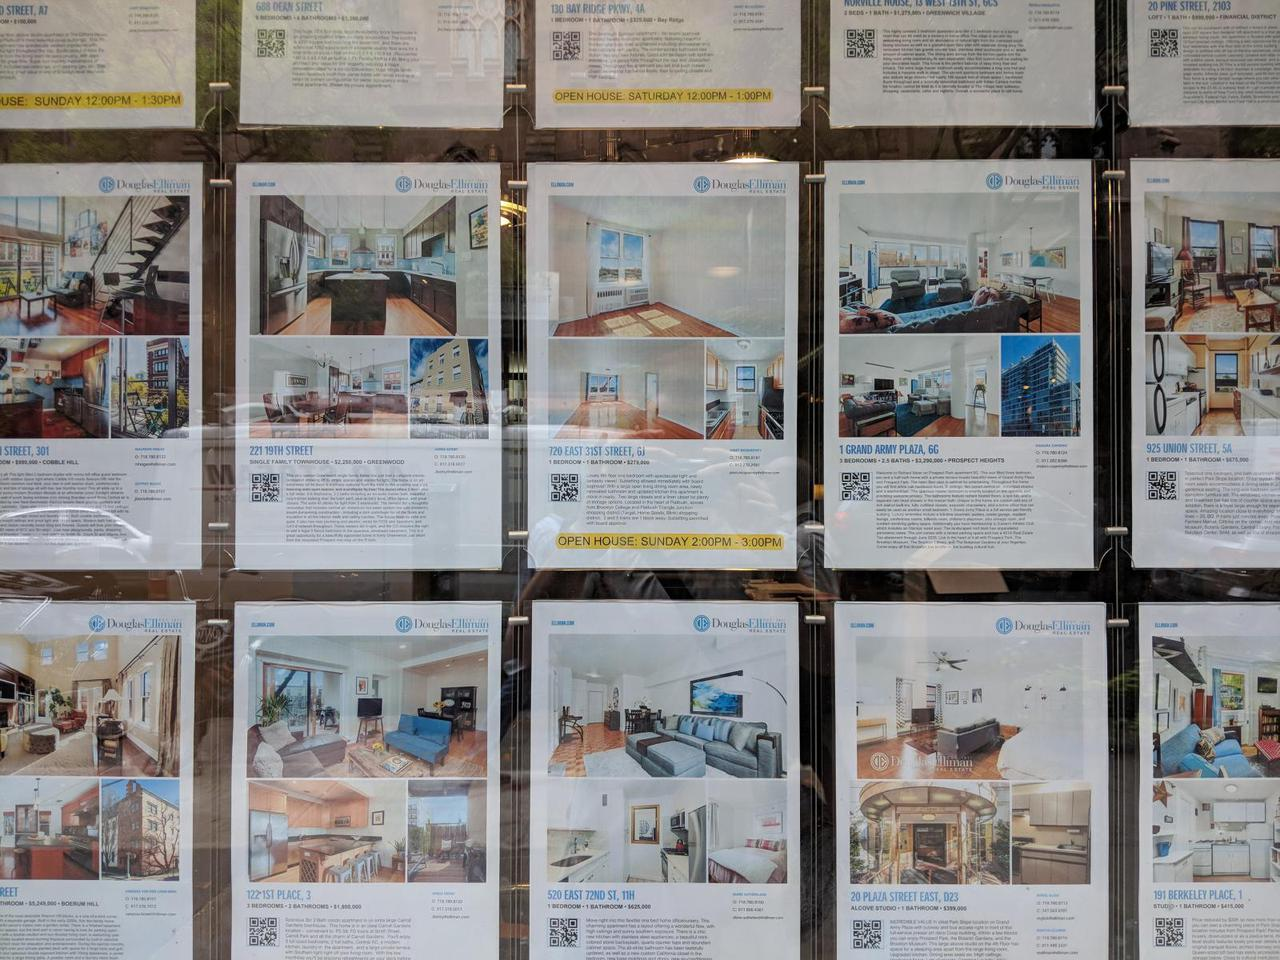 /images/itp/temporary_expert/week1/apartment_listings.jpg